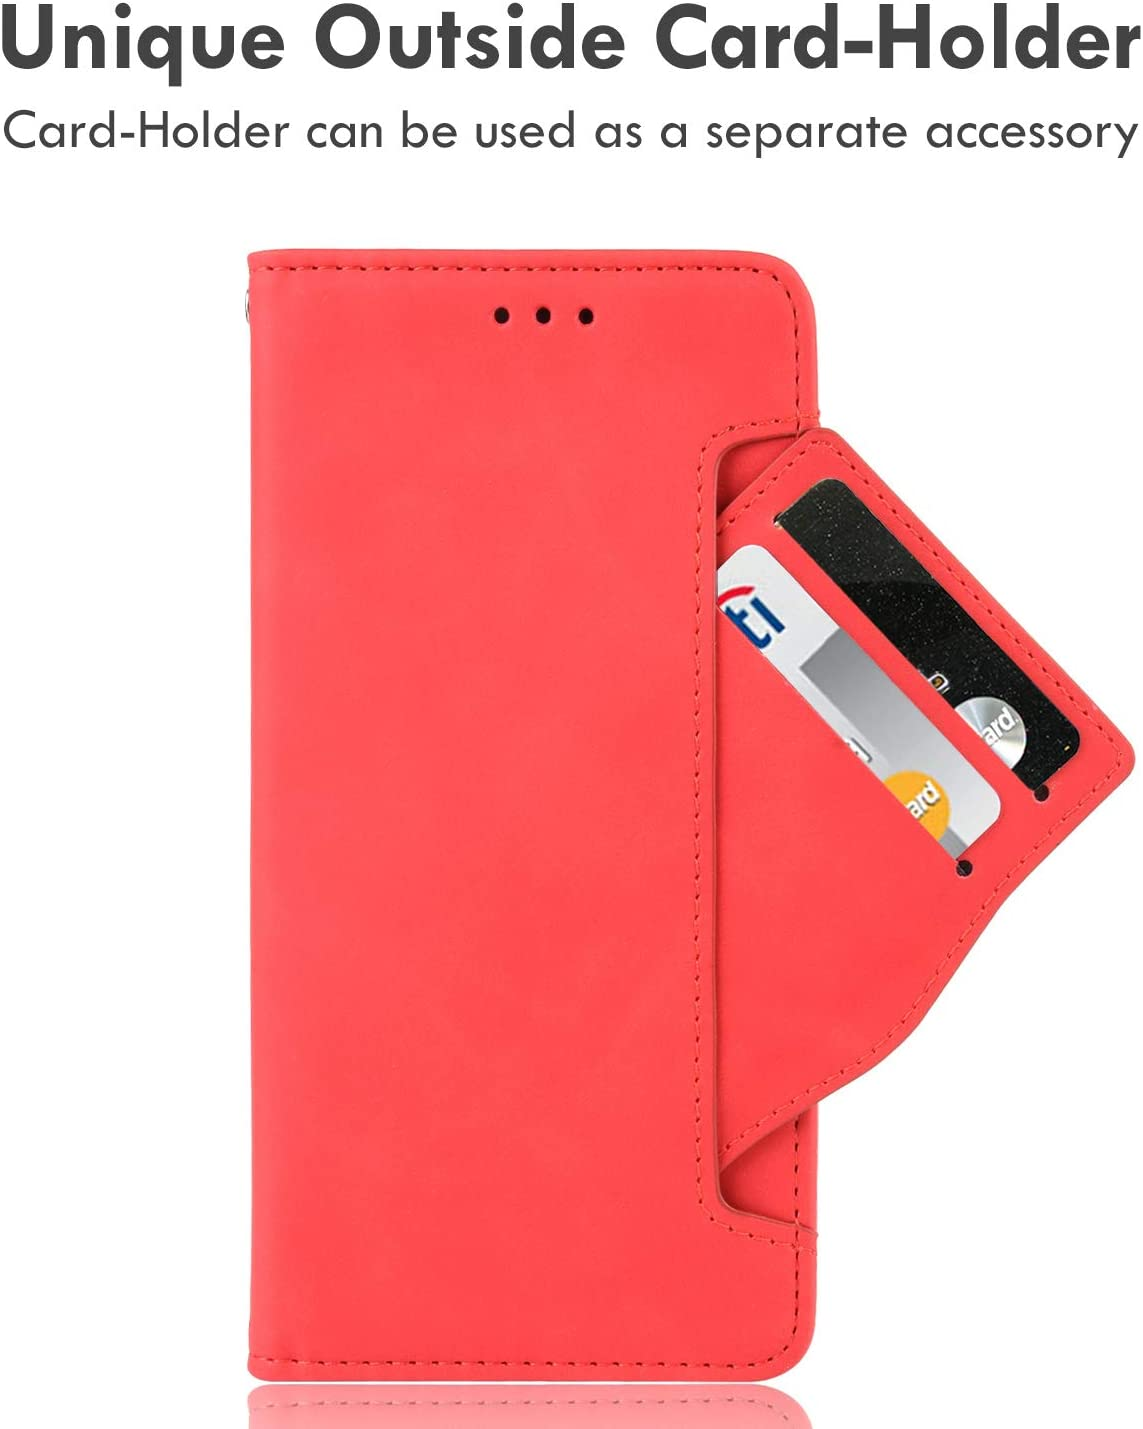 10 Cent Galaxy Z Fold 3 5G Case, Galaxy Z Fold 3 Wallet case, Classic Leather Wallet Foldable Case with Credit Card Holder Slots Flip Wallet Case for Samsung Galaxy ZFold3 5G(Red)